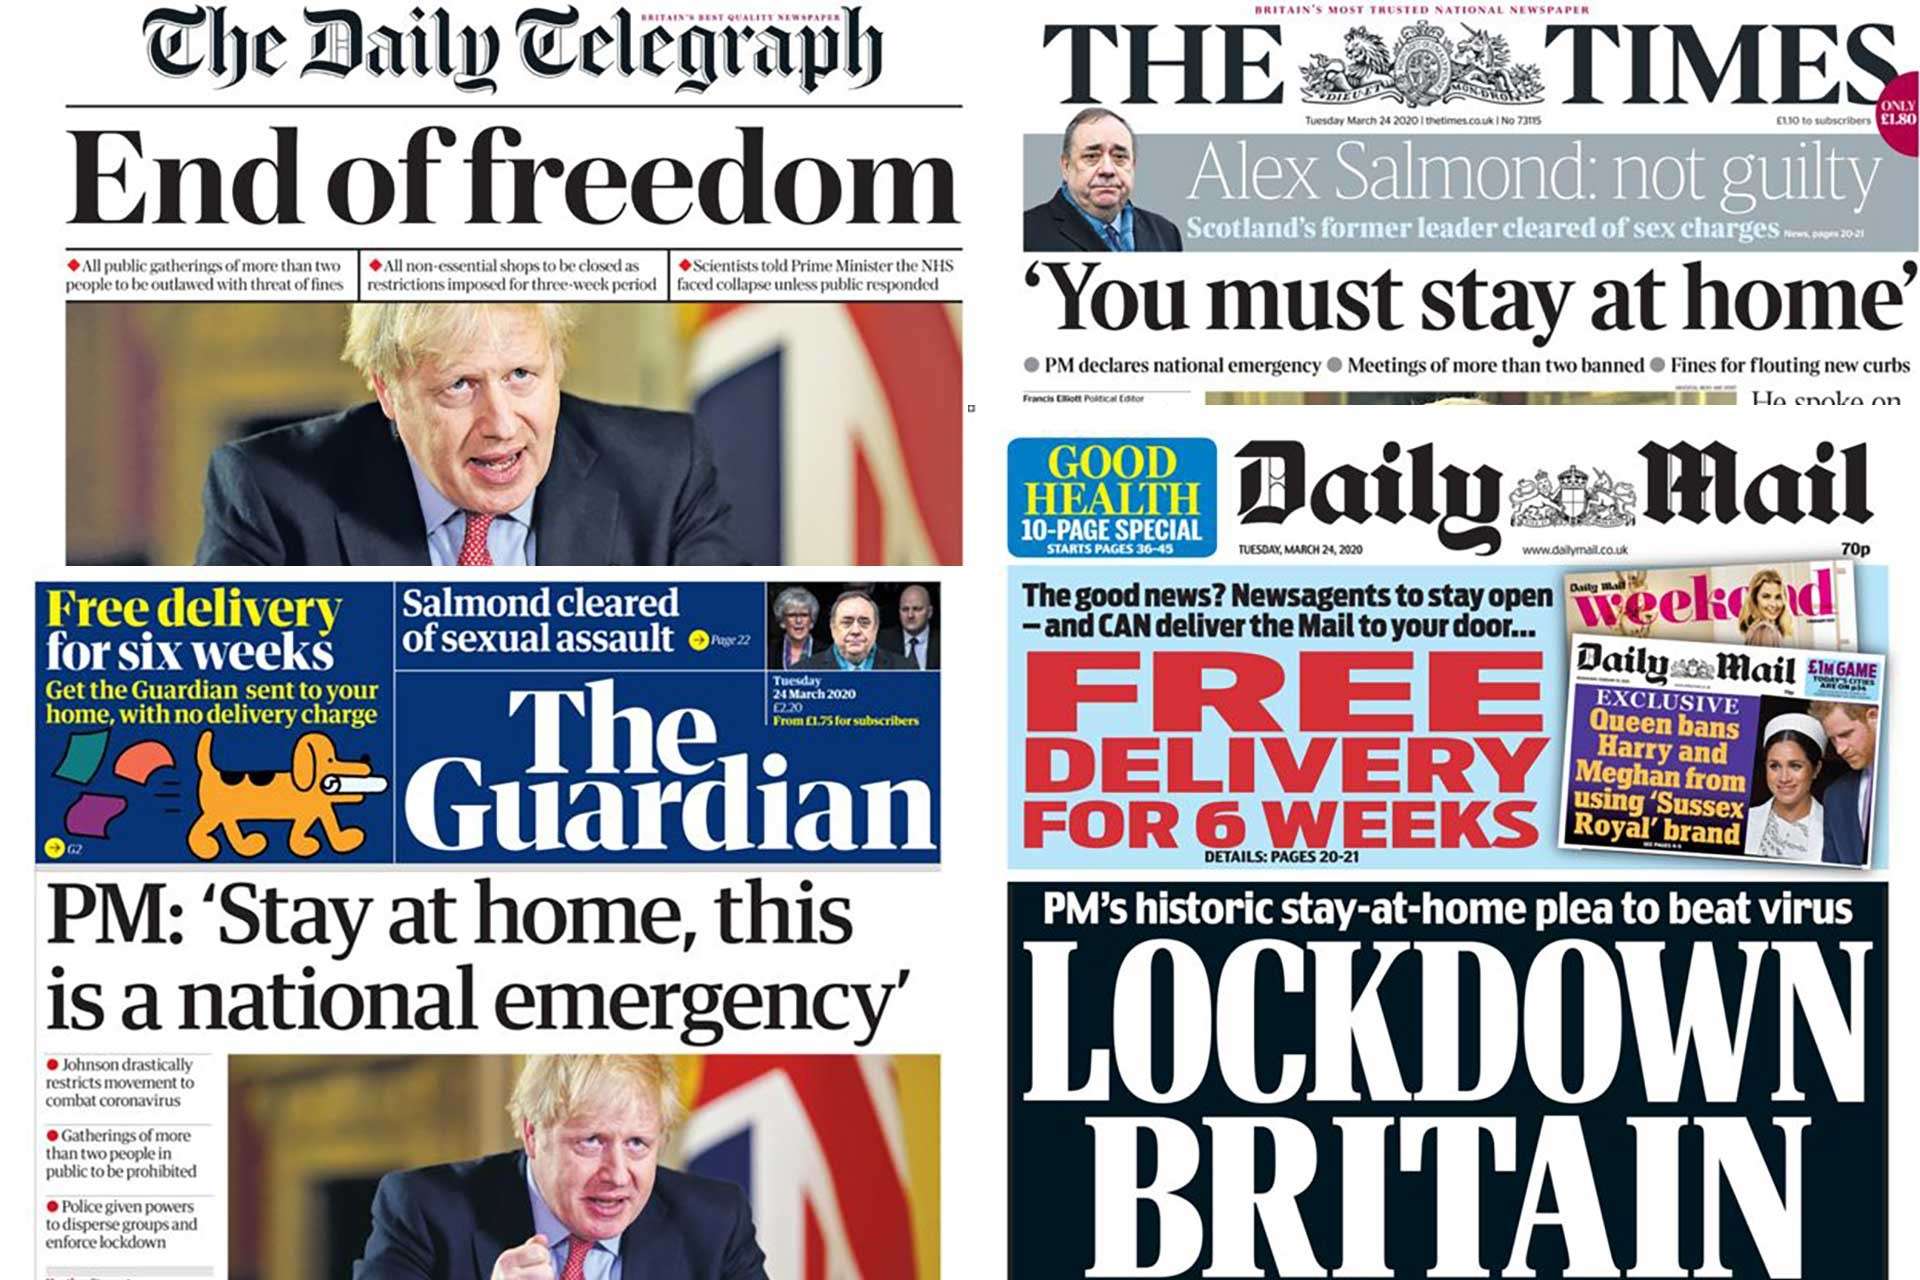 The Daily Telegraph,The Guardian, The Daily Mail ve The Times